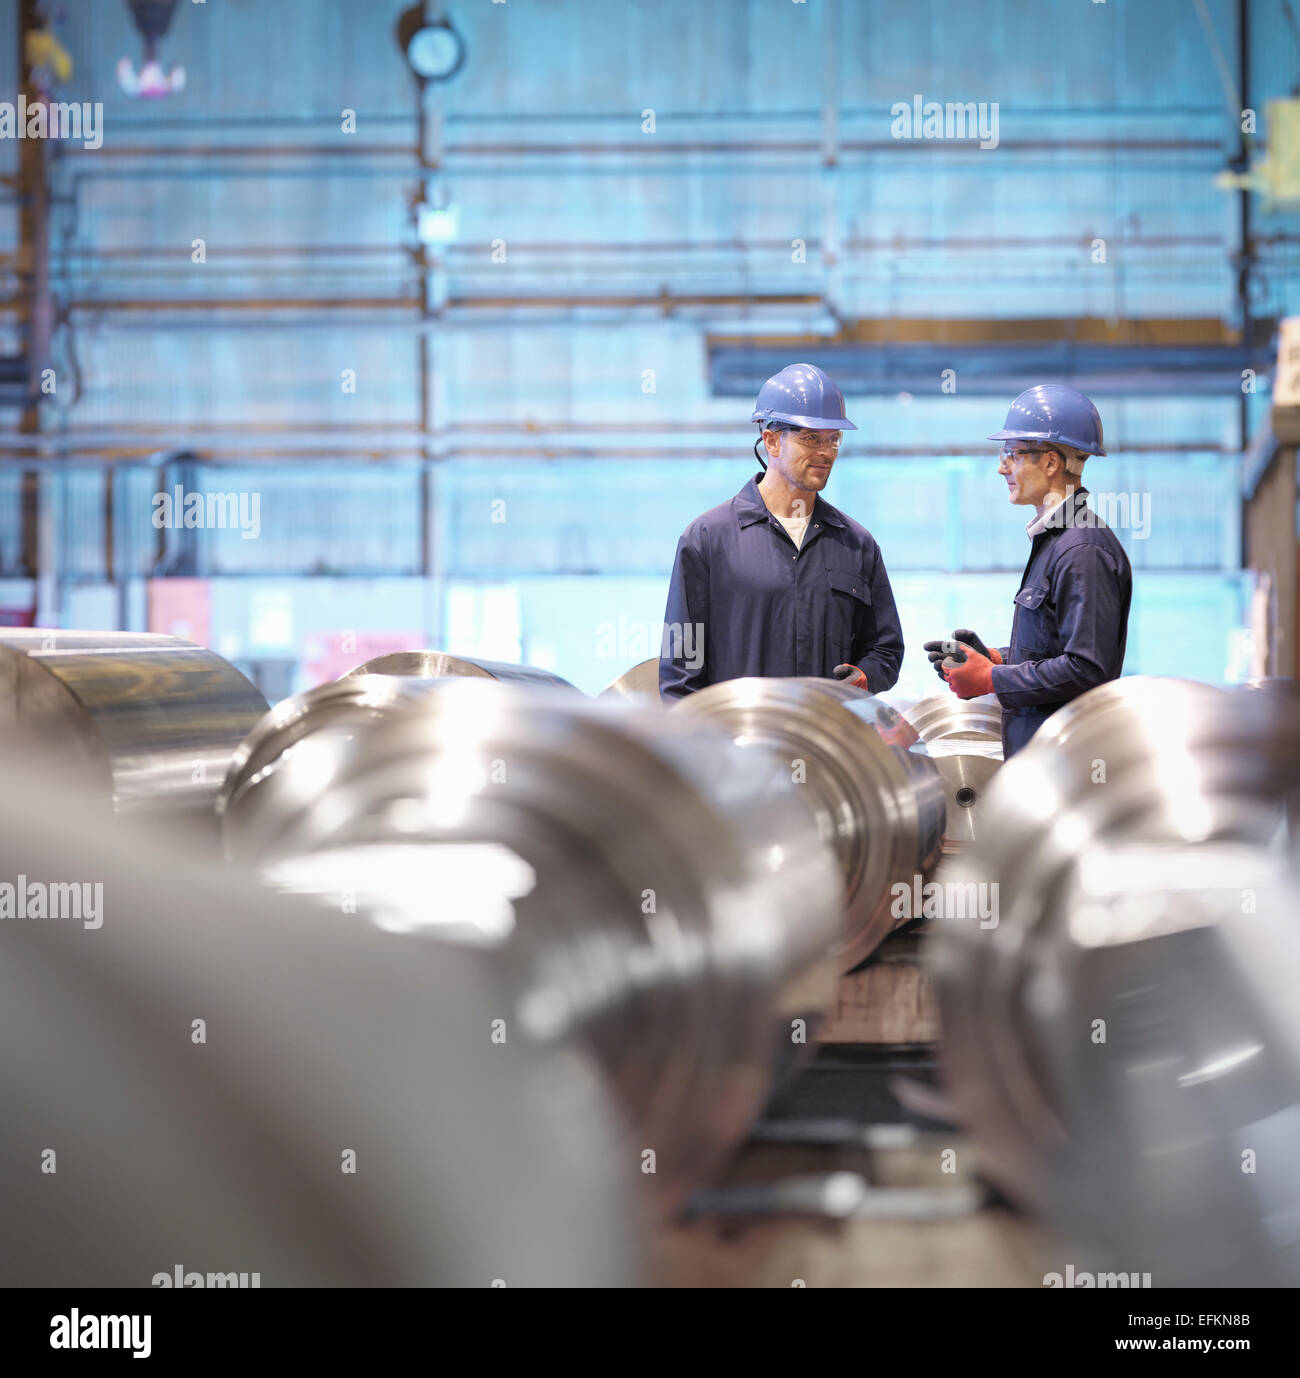 Engineers in discussion in engineering factory - Stock Image